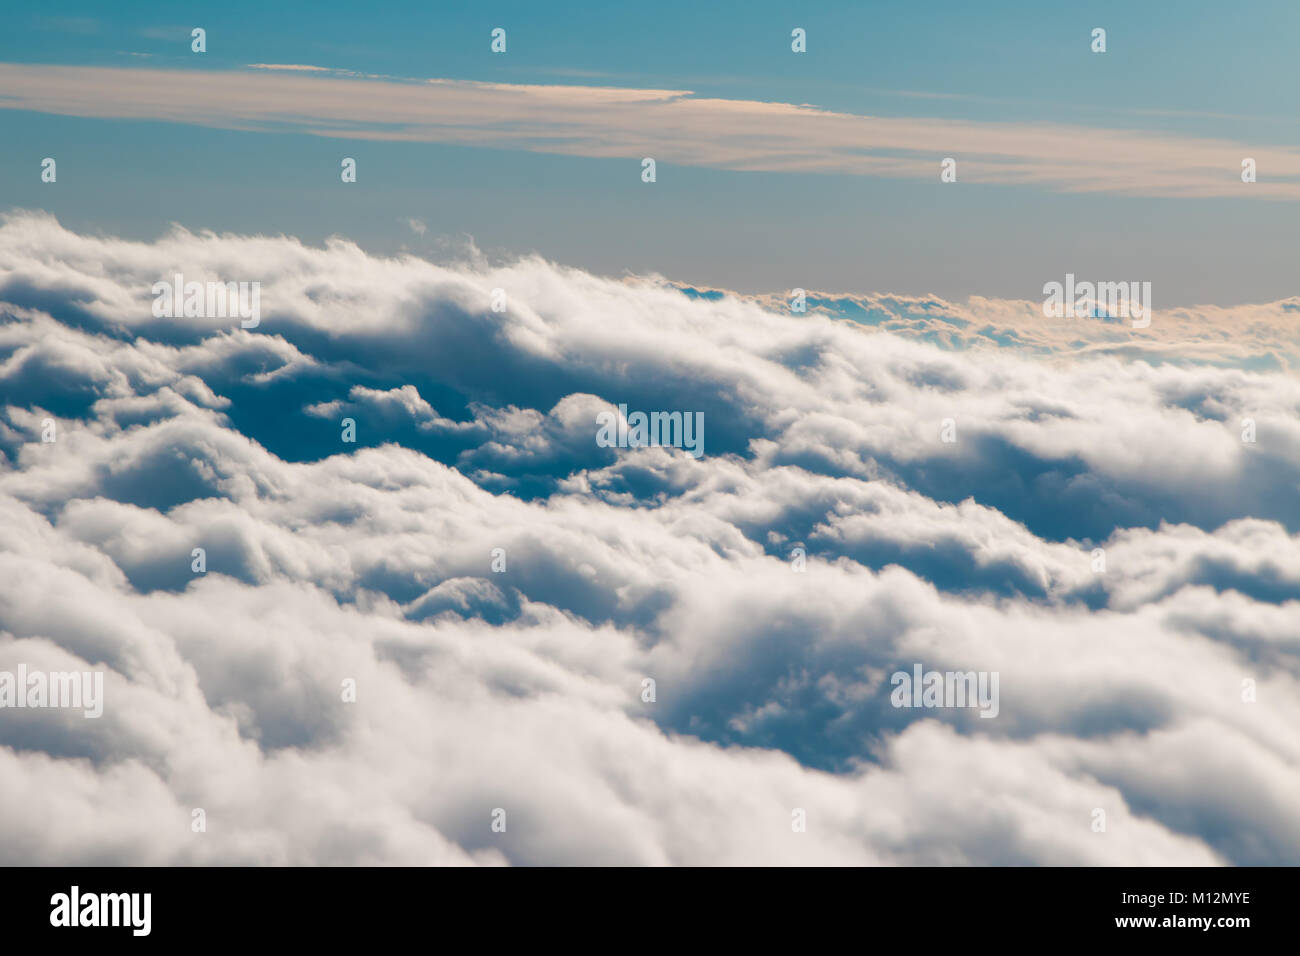 A wave of fluffy clouds roll by an airplane window - Stock Image